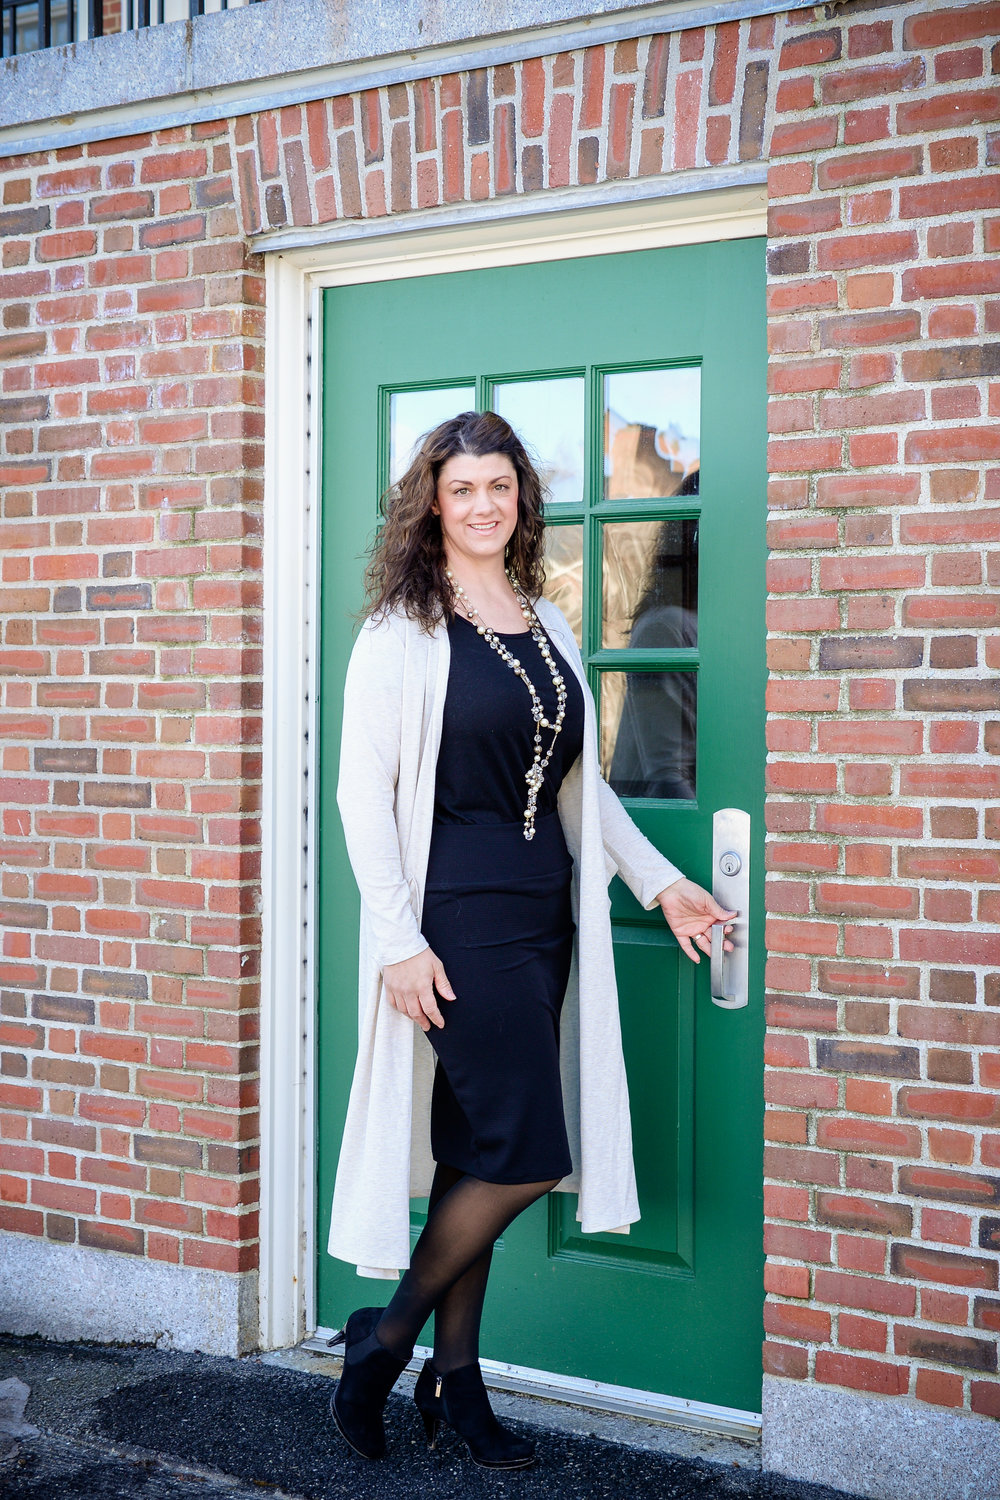 Heather pictured in Cassie pencil skirt, Classic T, and Sarah duster sweater.  Classy, elegant, and professional.  Waterville, Maine Colby College